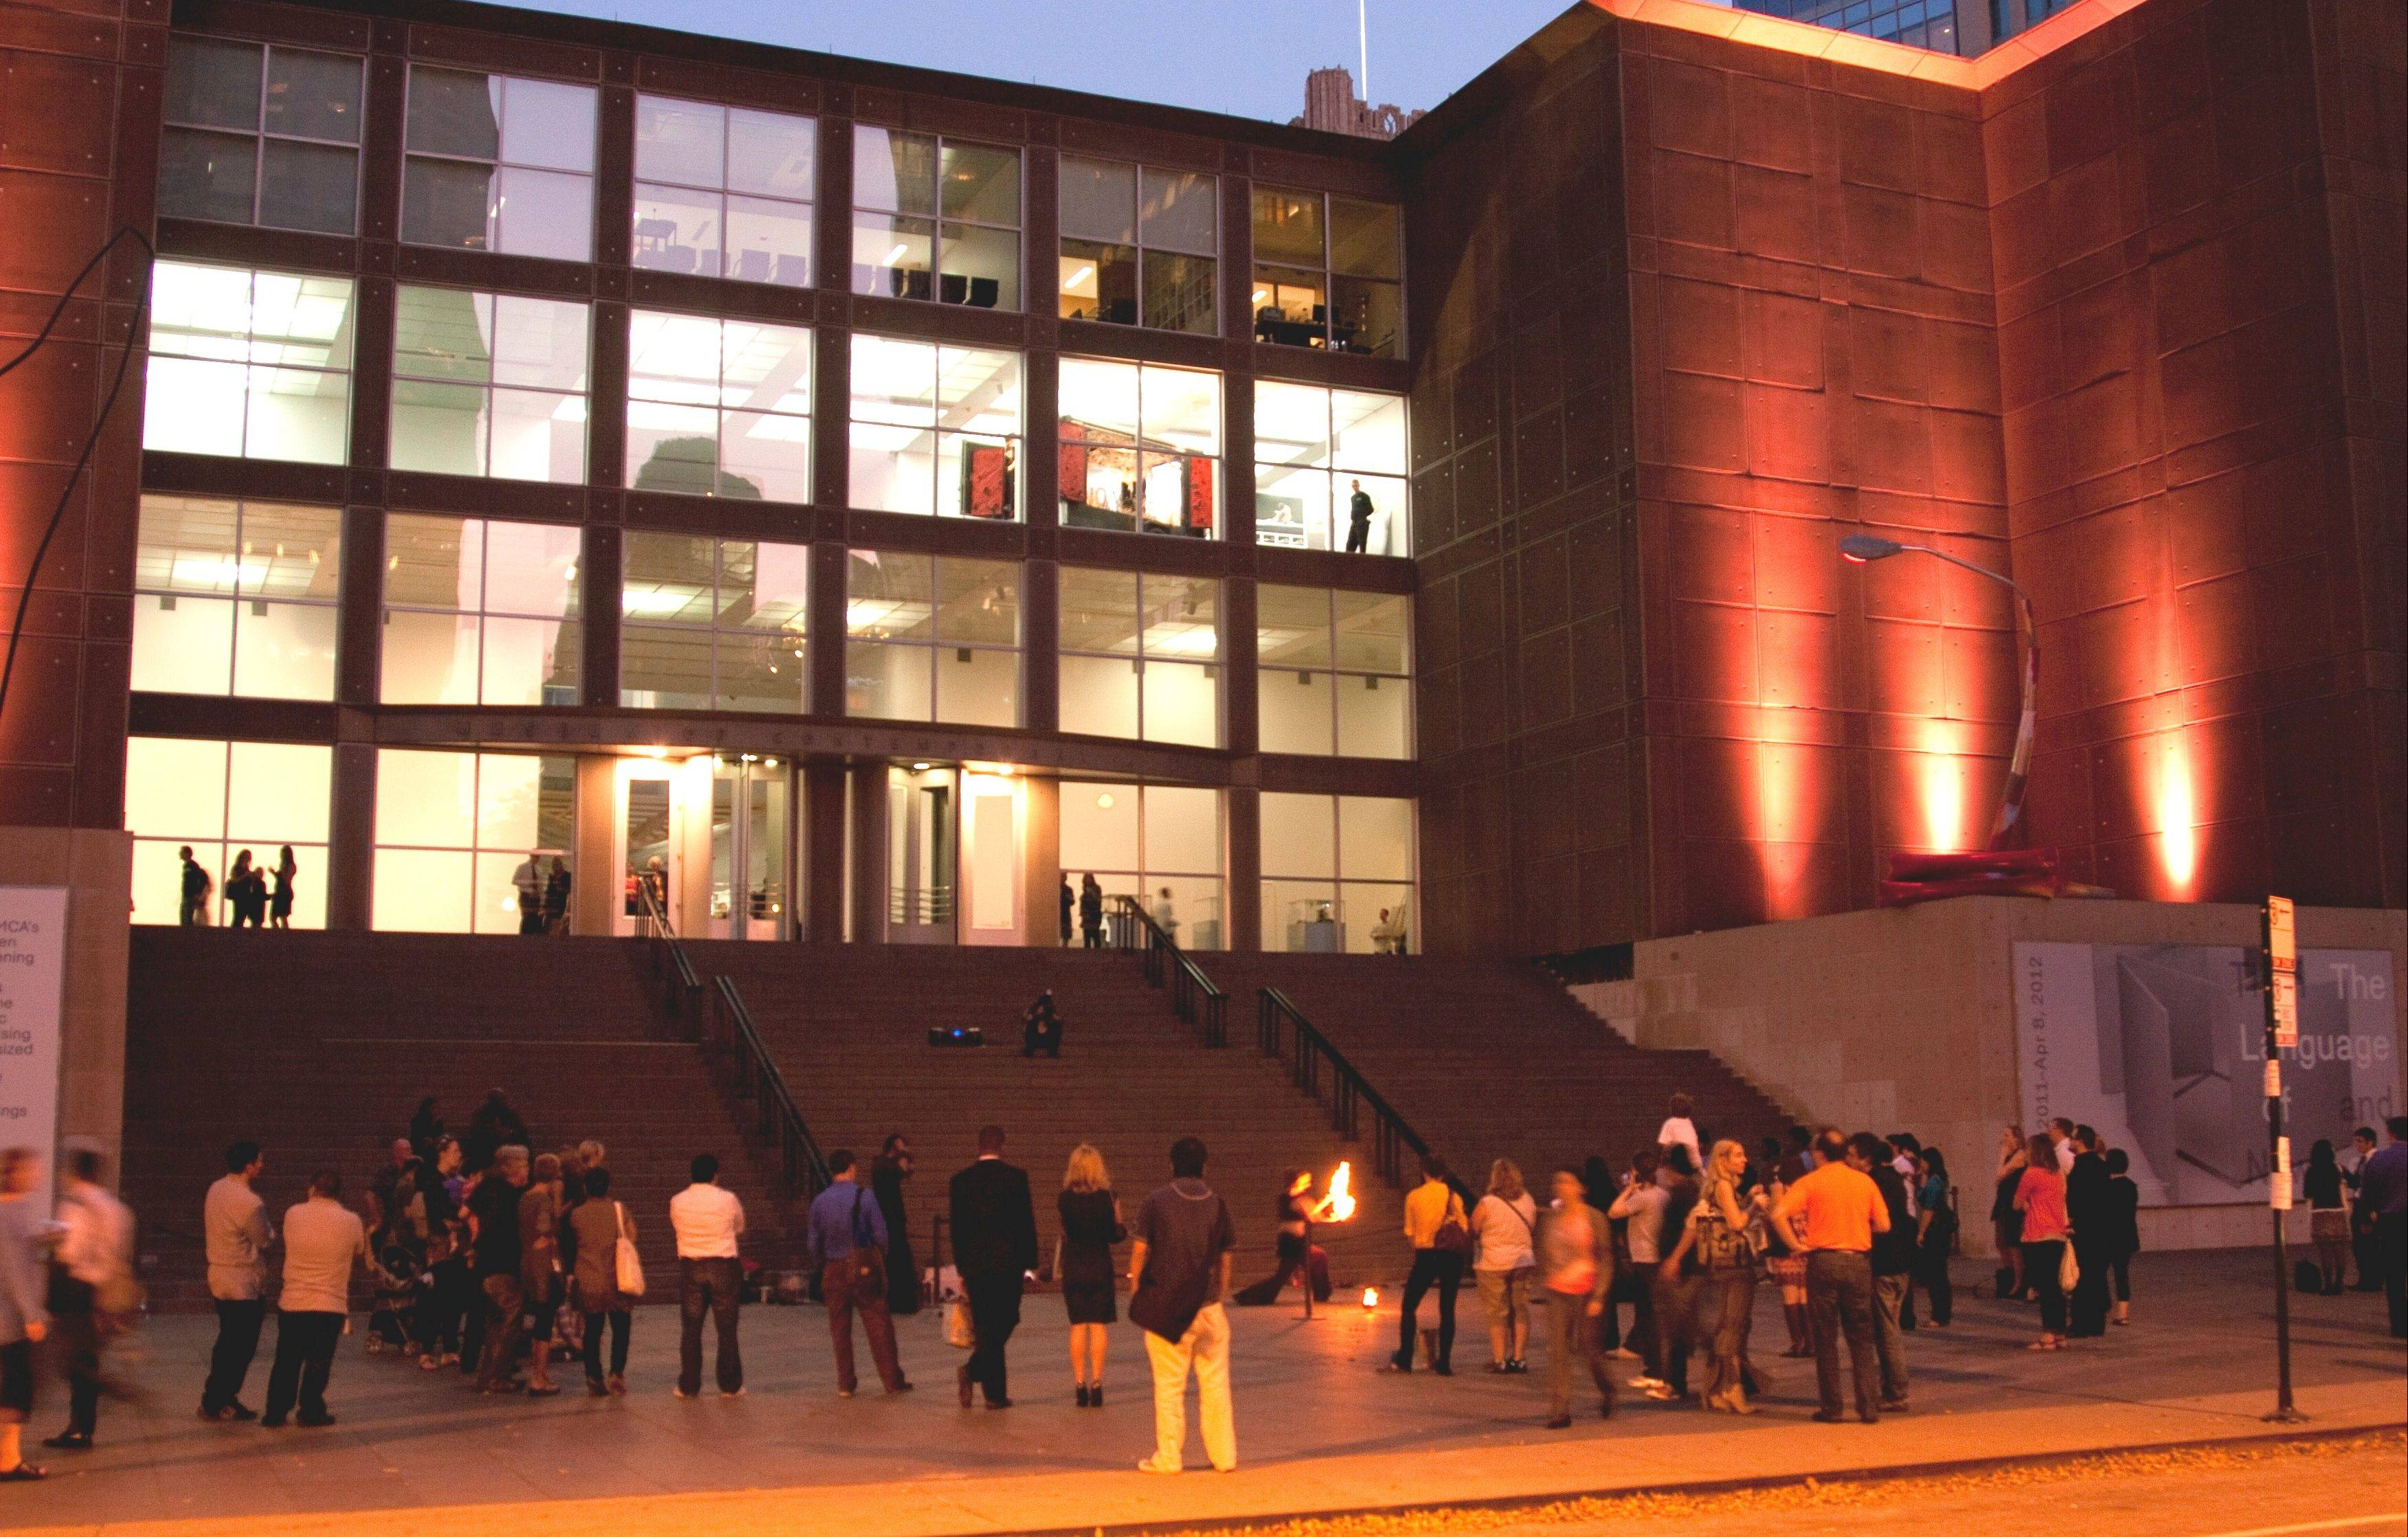 Exhibits and free entertainment are offered at First Fridays at the Museum of Contemporary Art in Chicago.